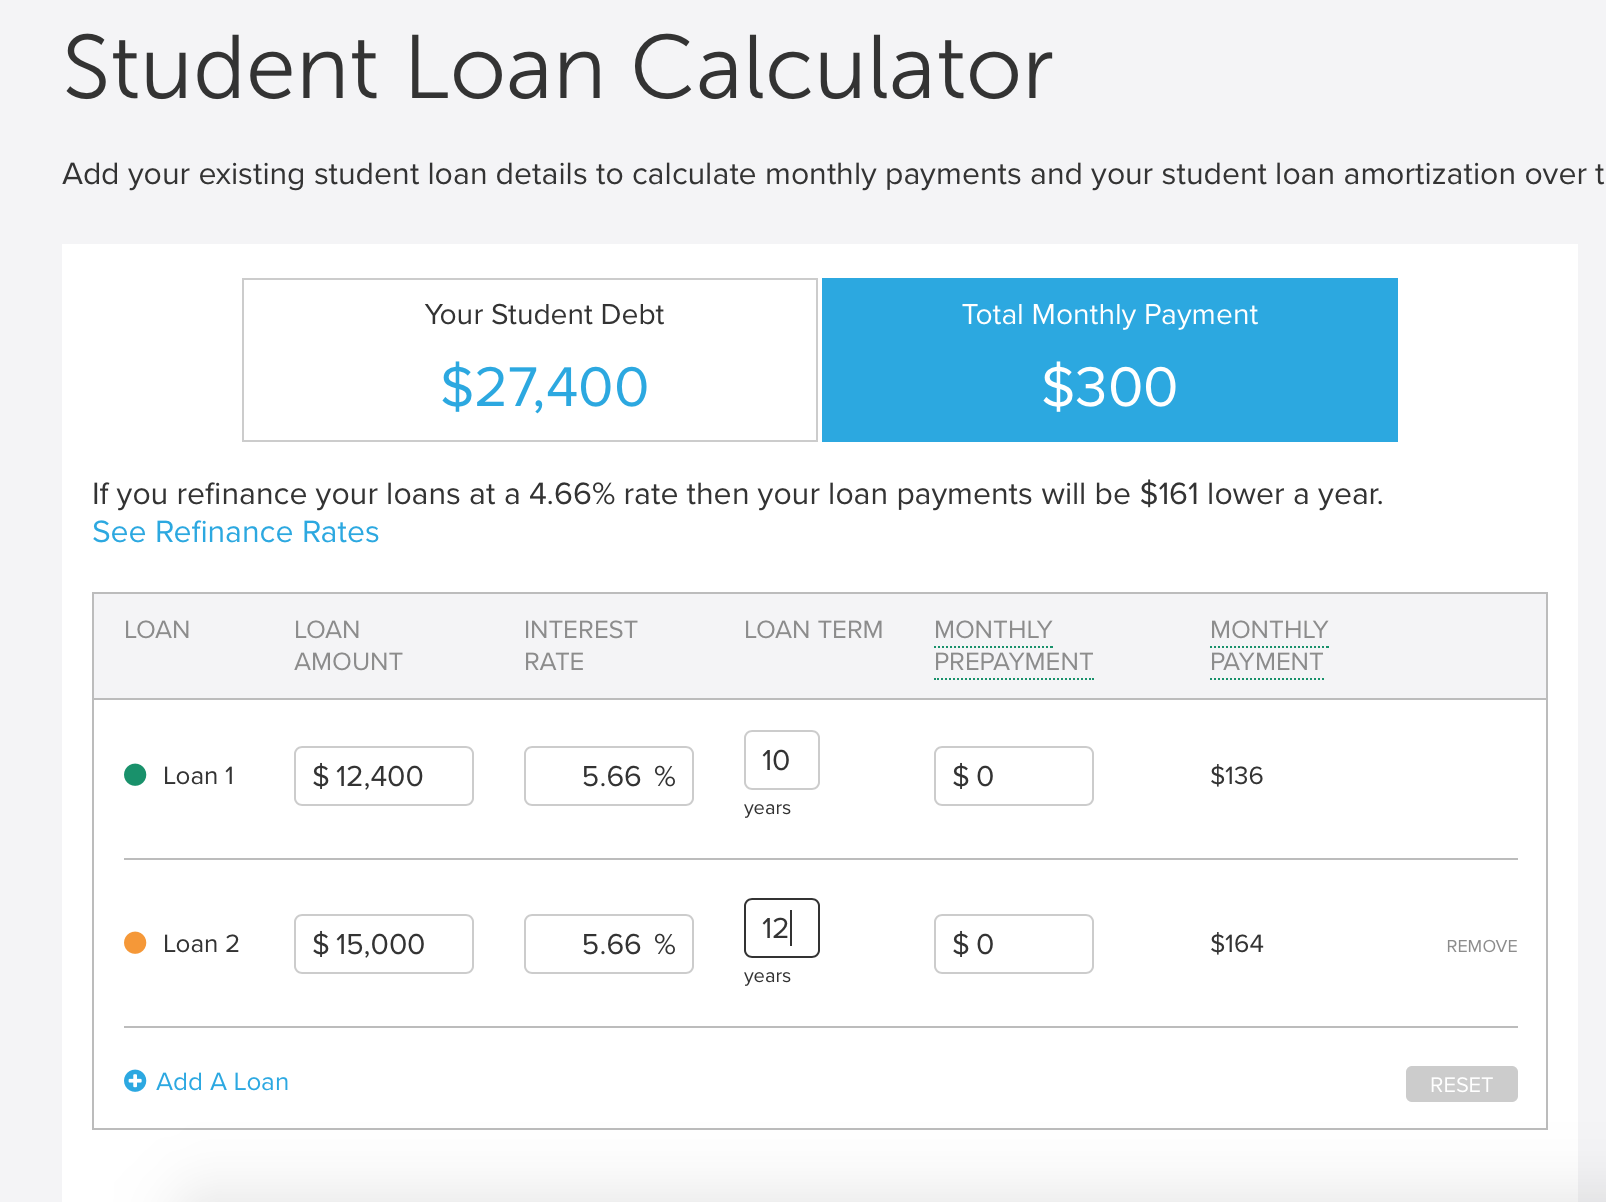 student loan calculator website image